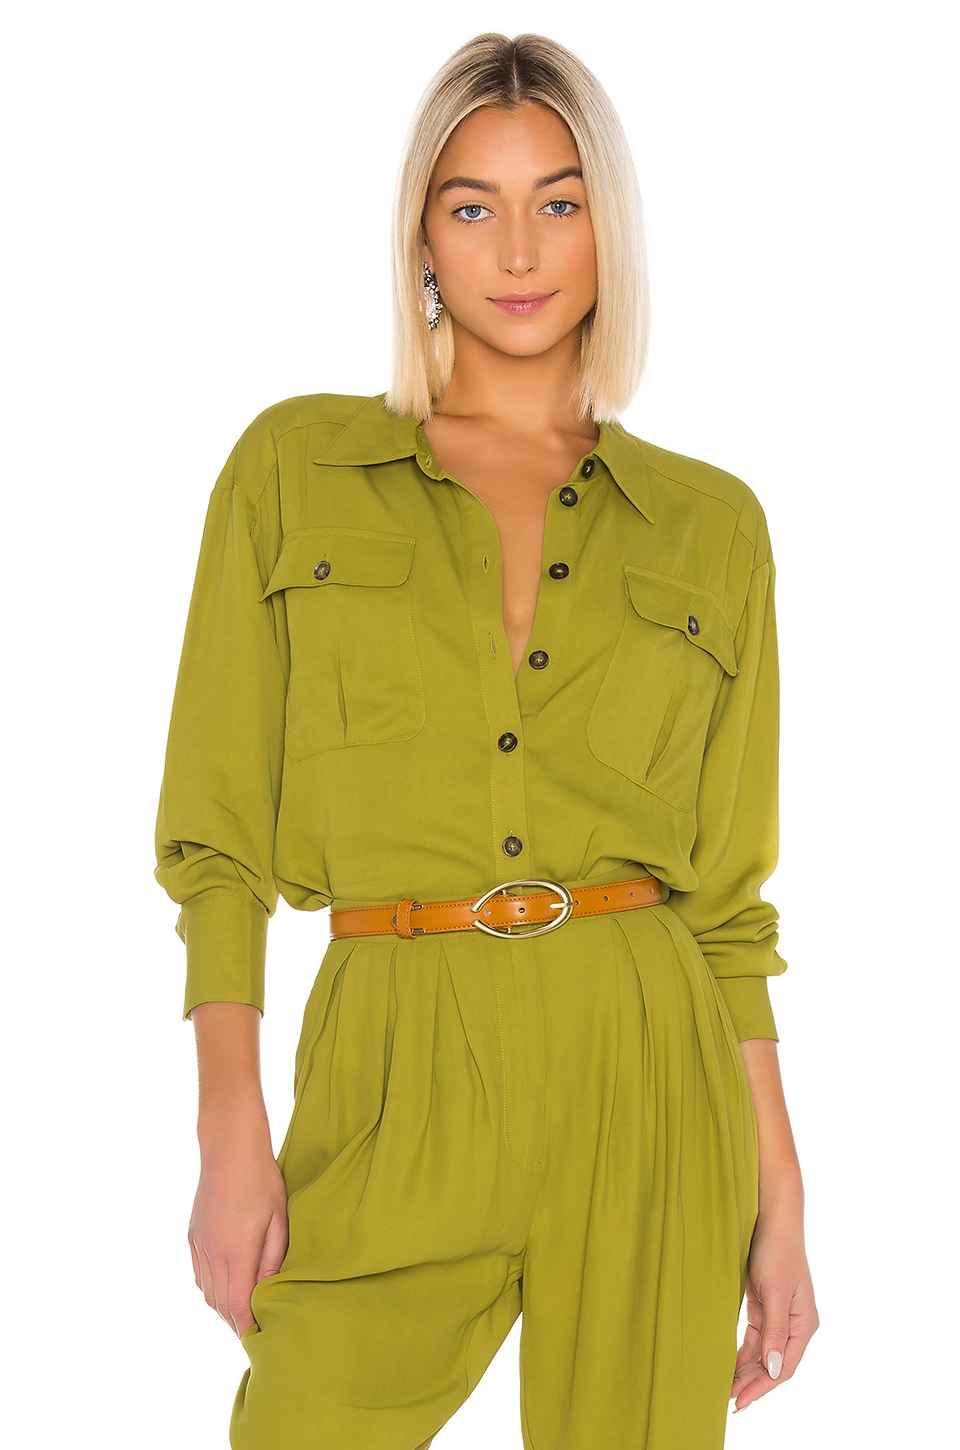 LPA Candace Top in Kermit Green